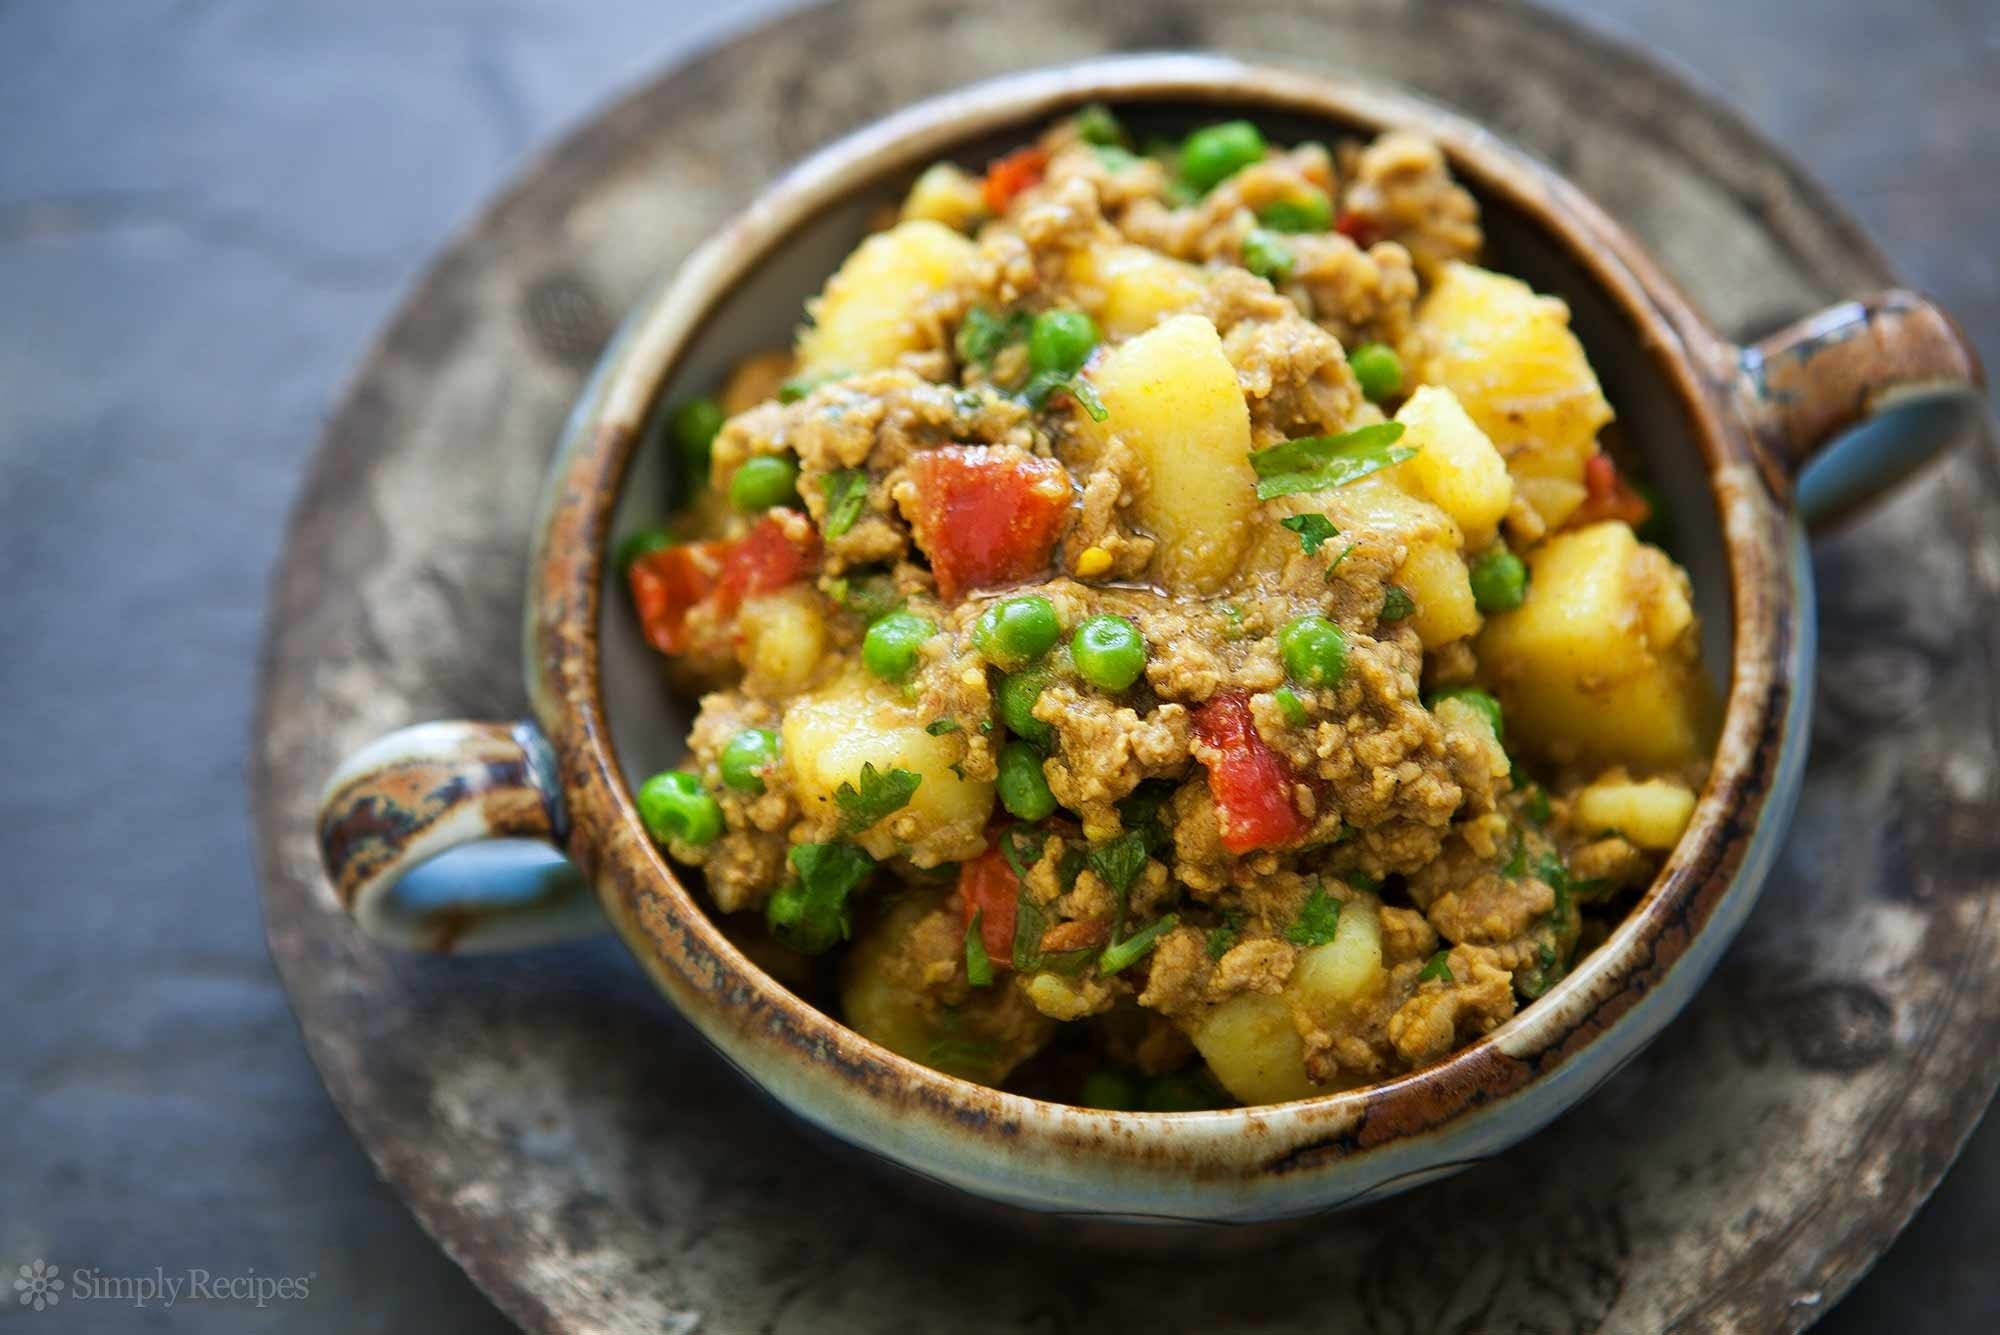 10 Attractive Recipe Ideas For Ground Turkey curried ground turkey with potatoes recipe simplyrecipes 2020